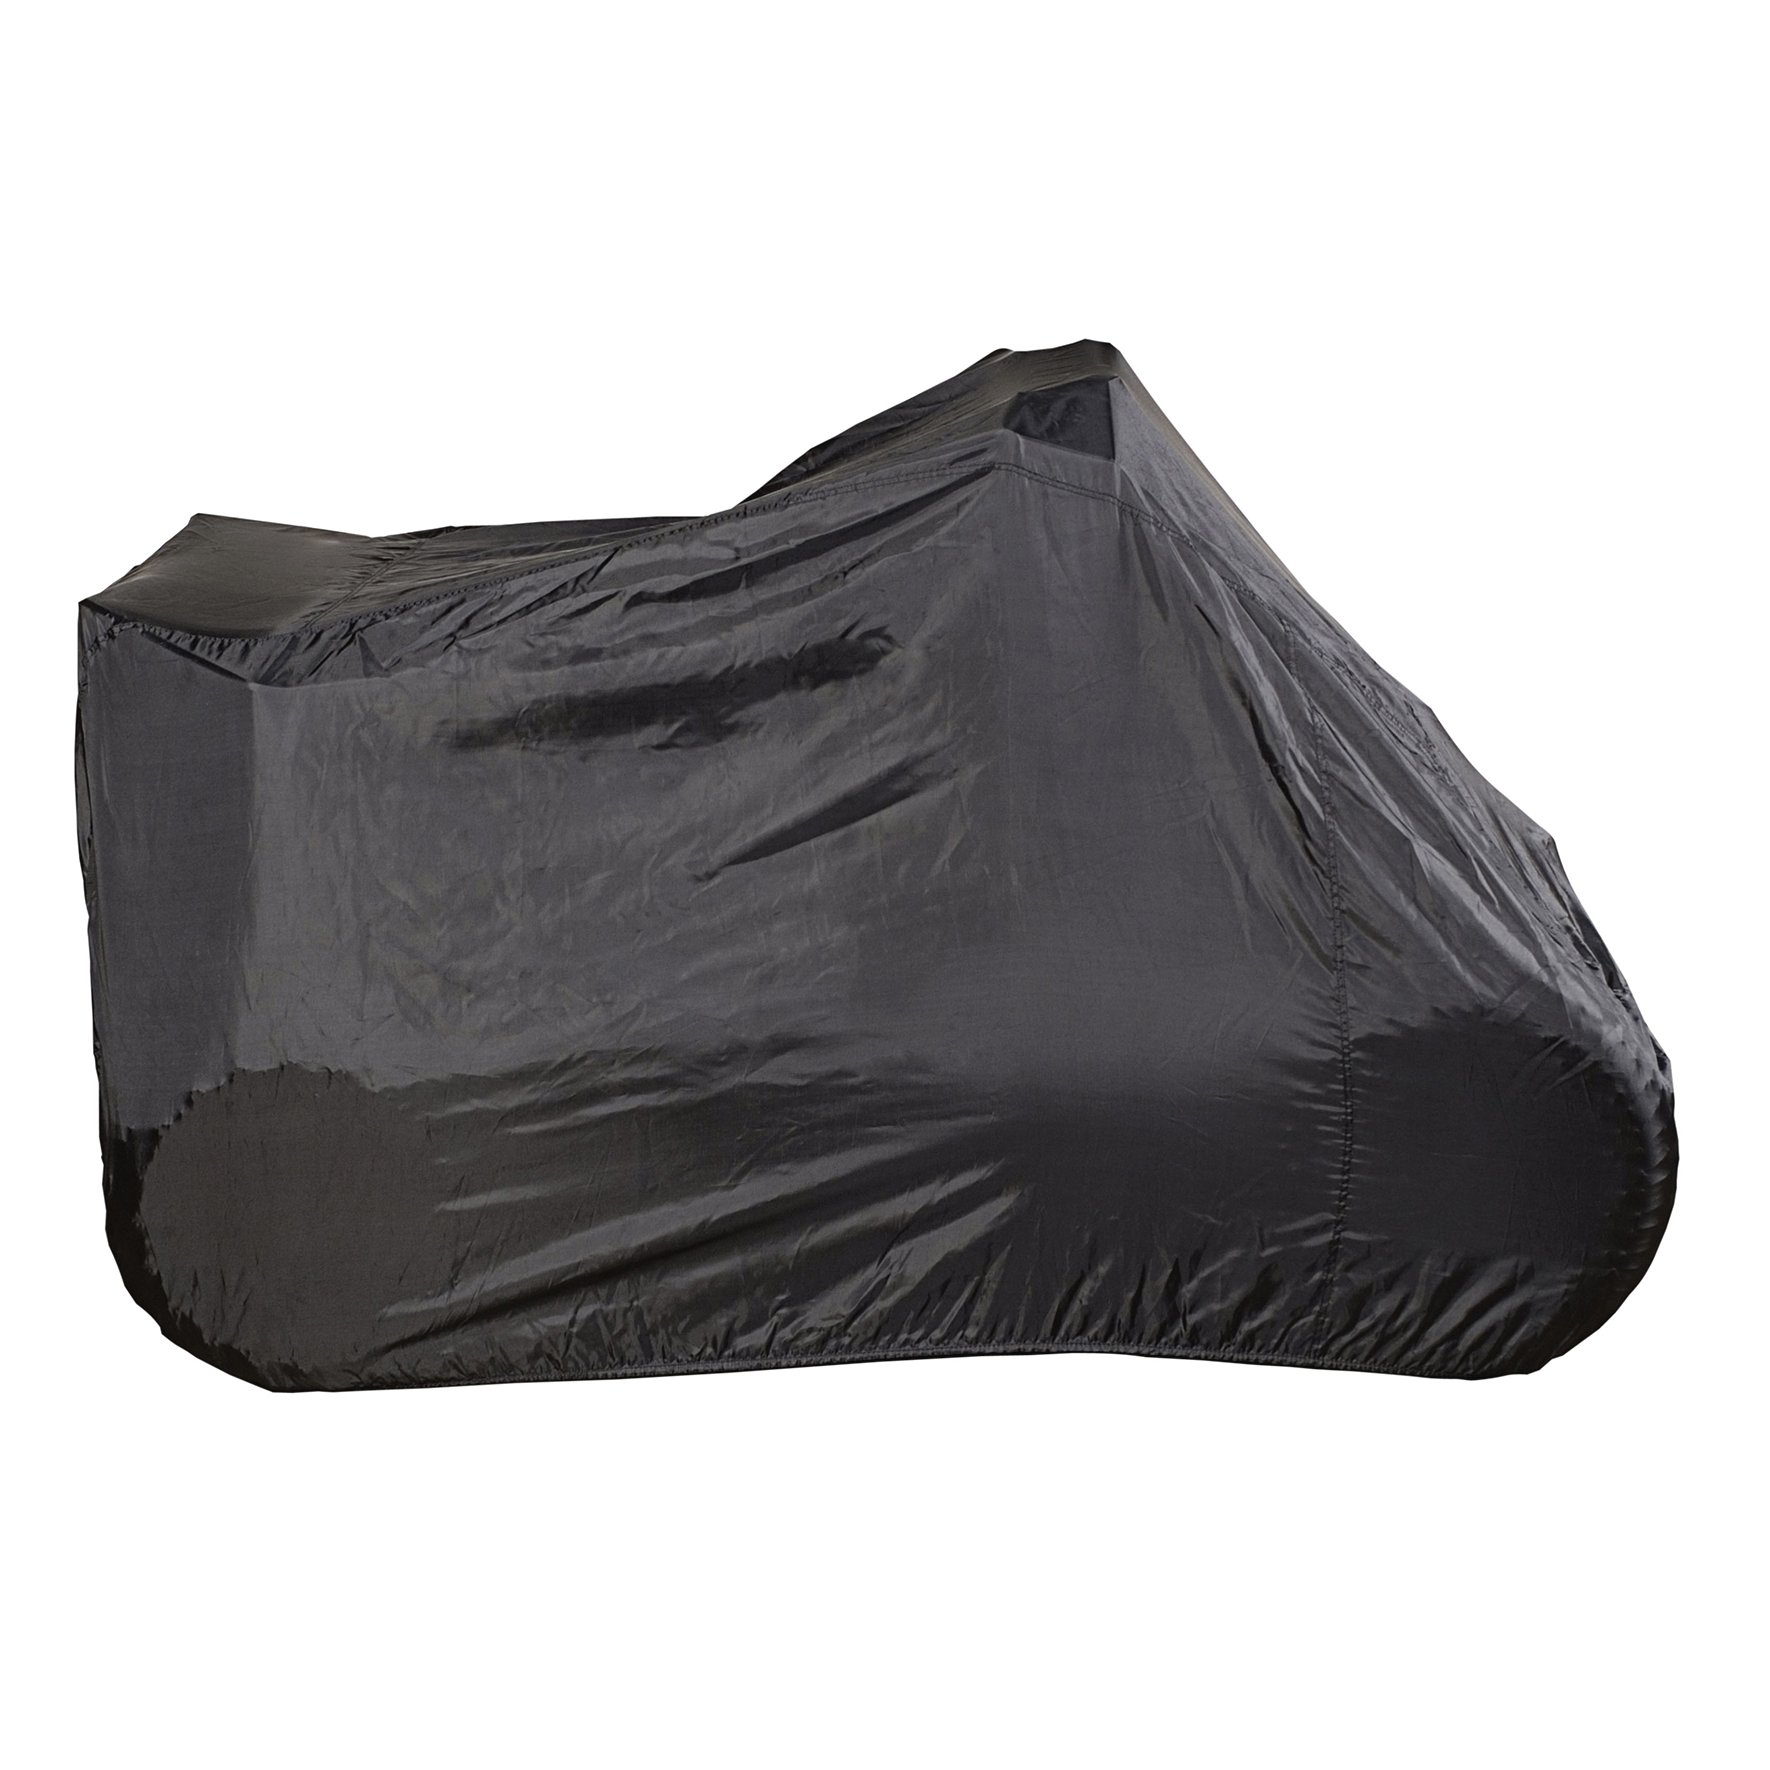 Guardian by Dowco 26043-01 Indoor/Outdoor Water Resistant Reflective ATV Cover: Black, Universal Sport